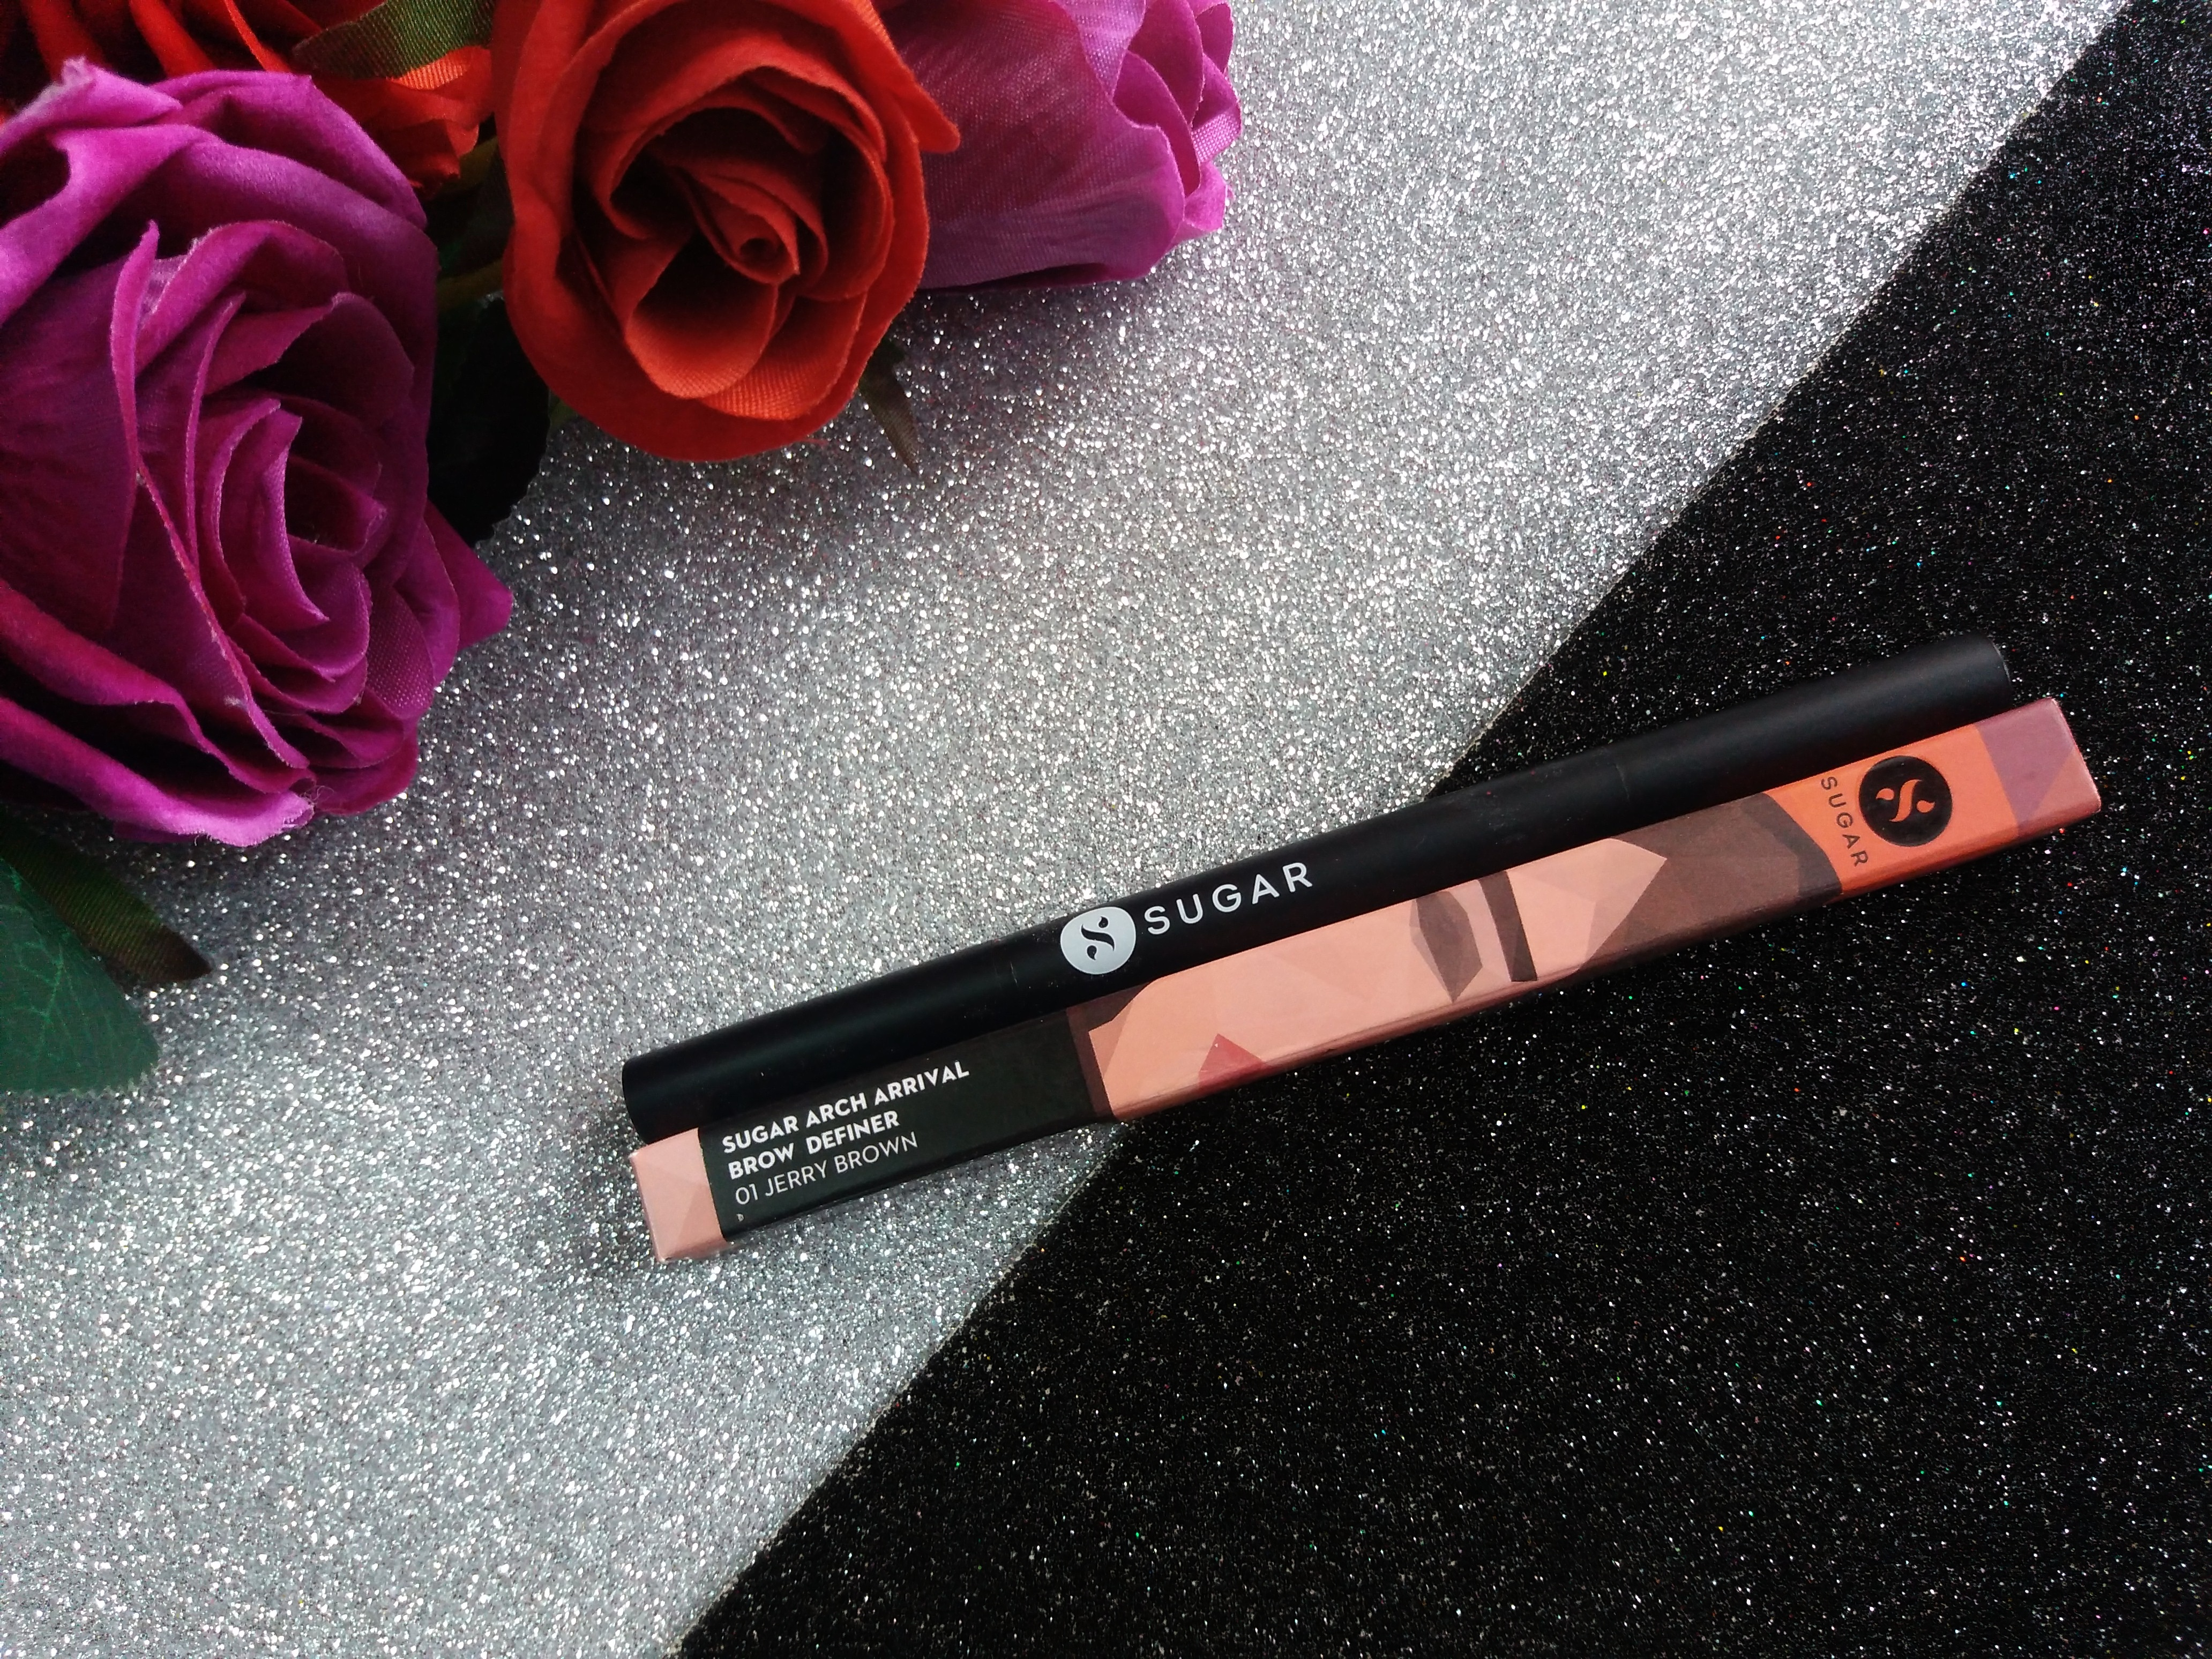 Sugar Arch Arrival Brow Definer review 1.jpeg